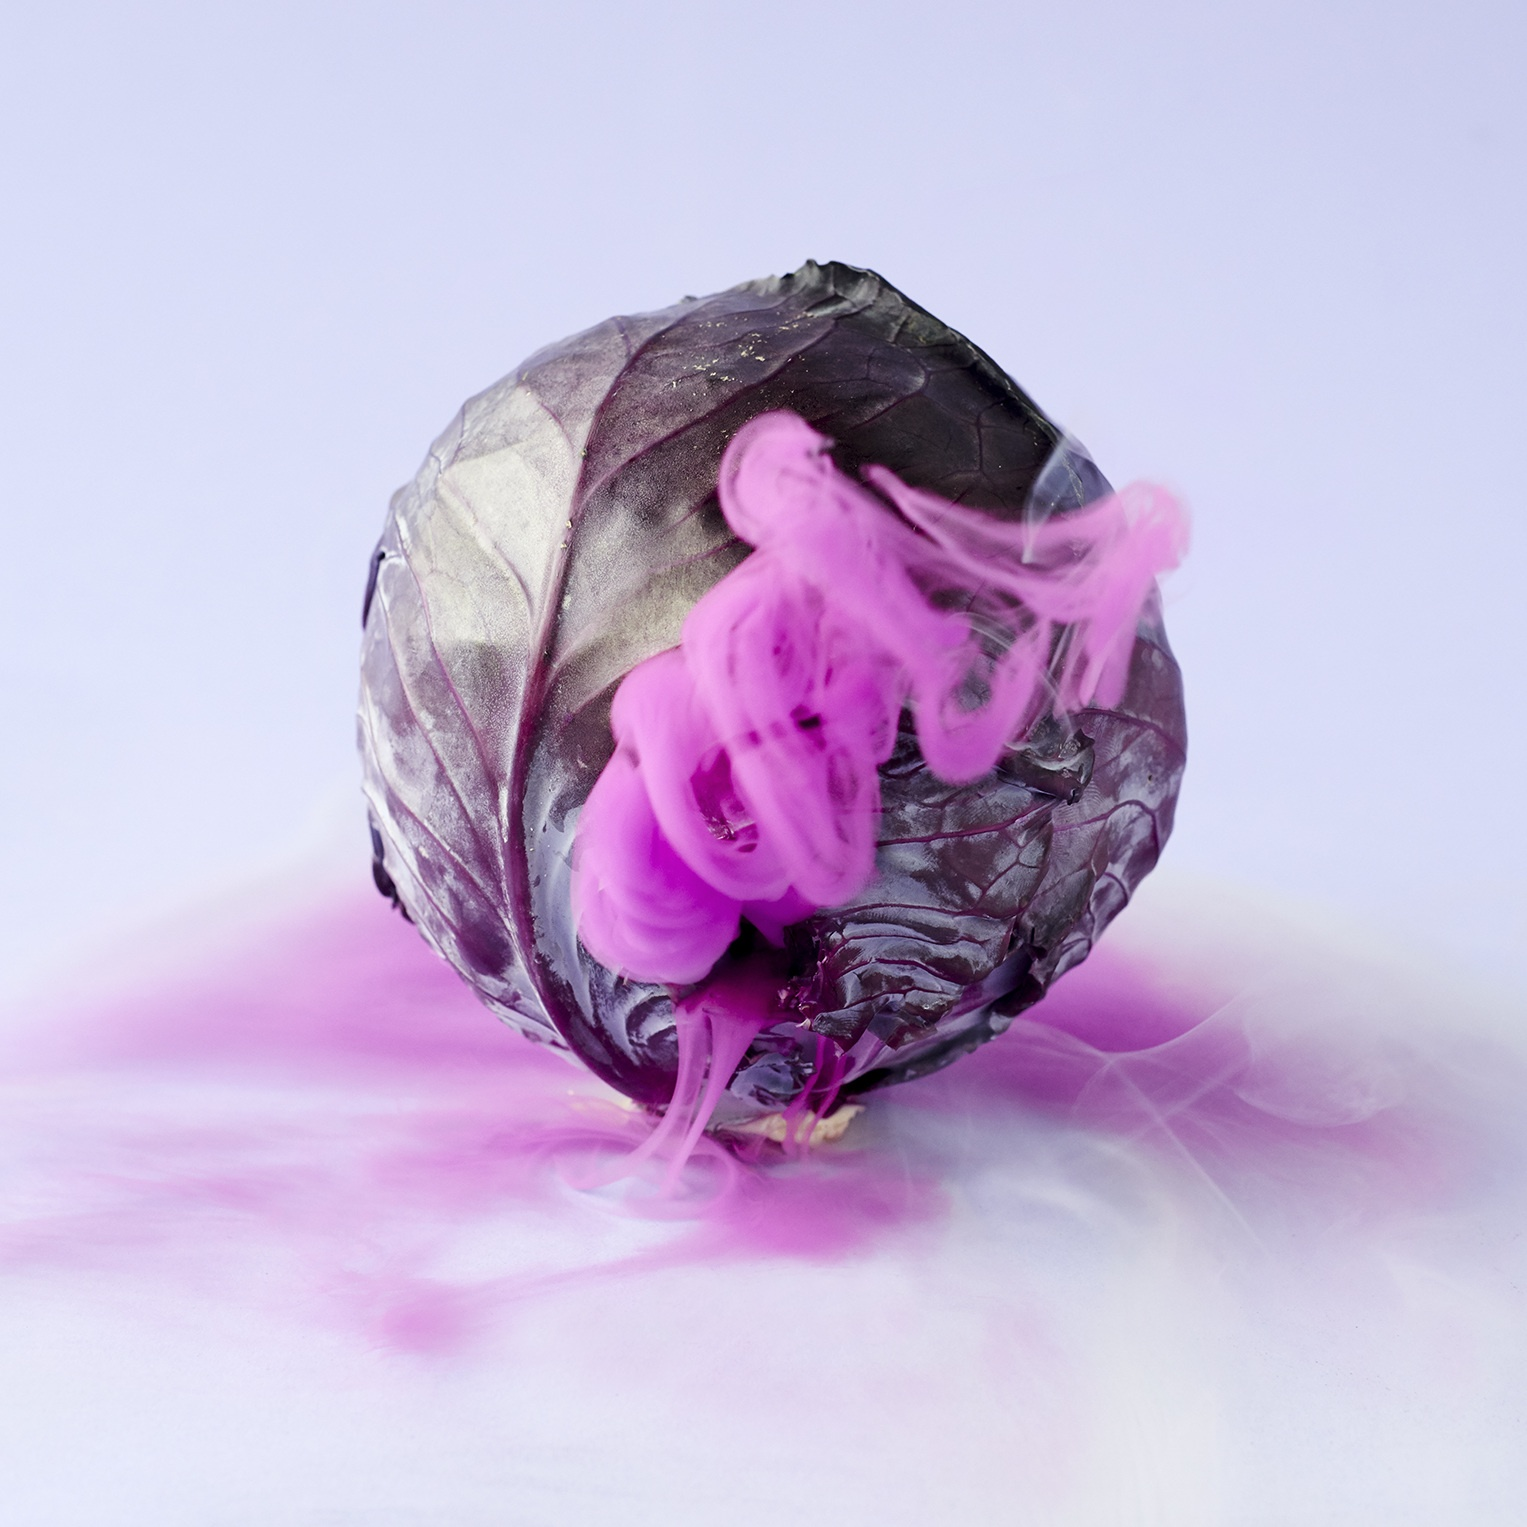 02-red_cabbage_1527_01